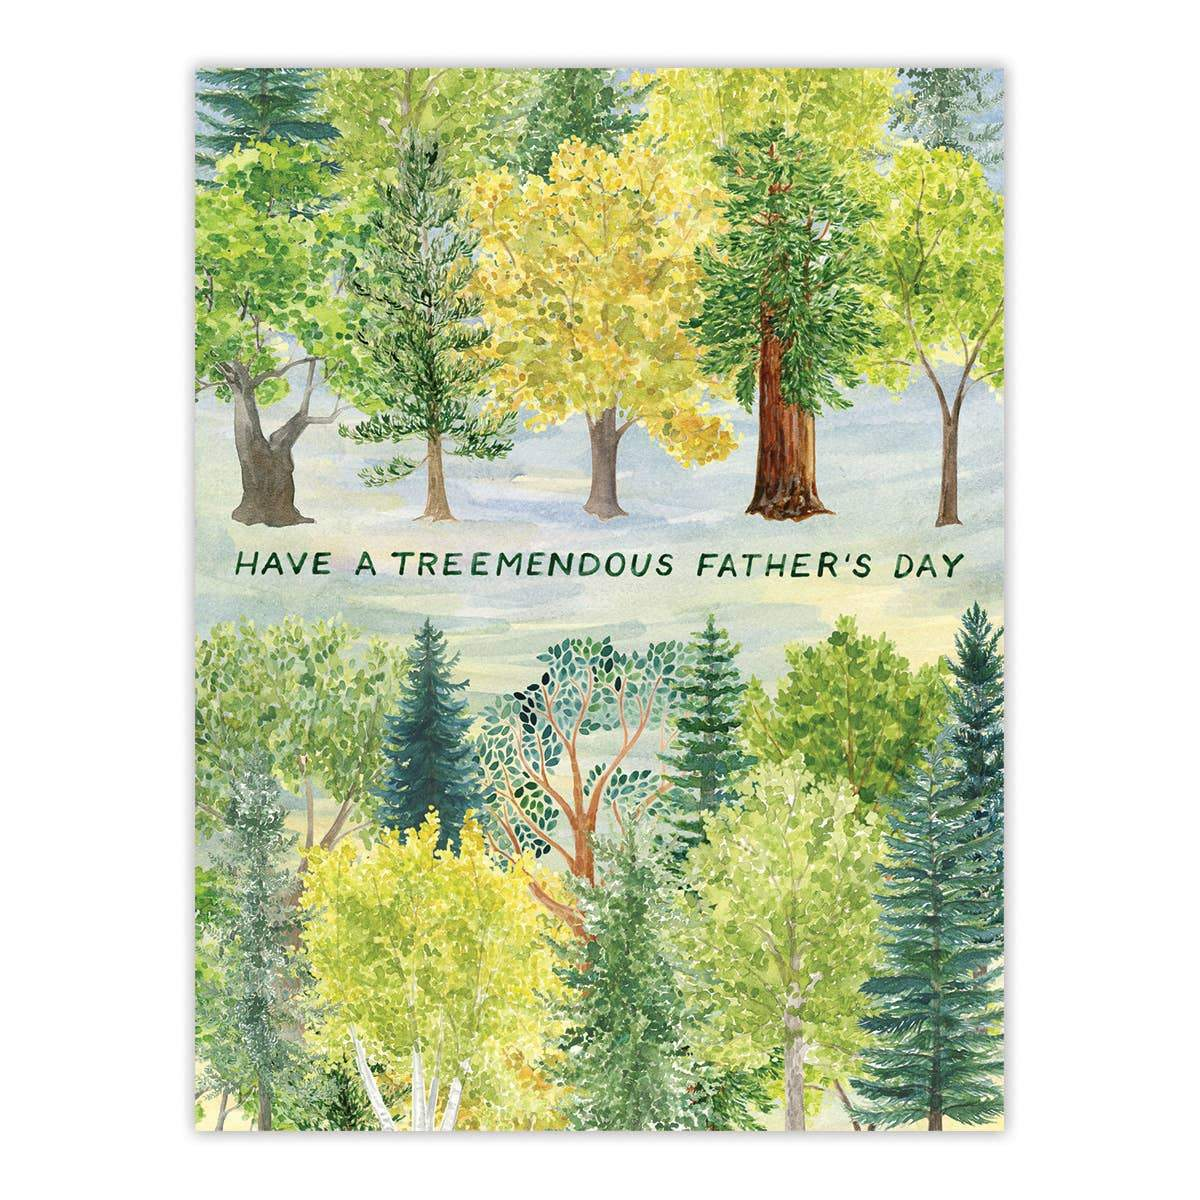 Treemendous Father's Day